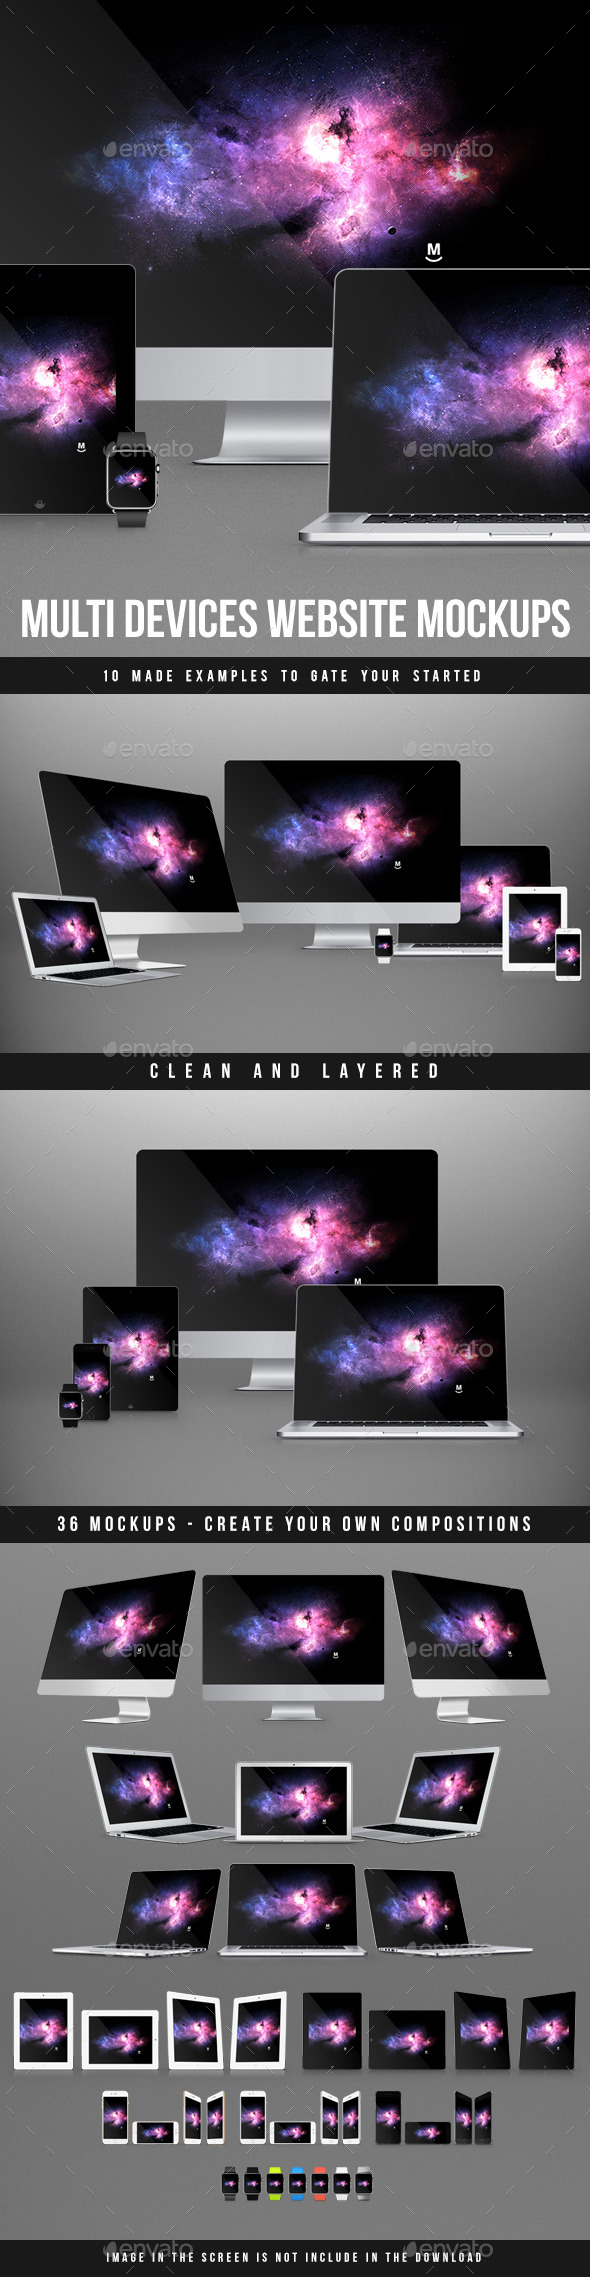 GraphicRiver Multi Devices Website Mockups 9281660